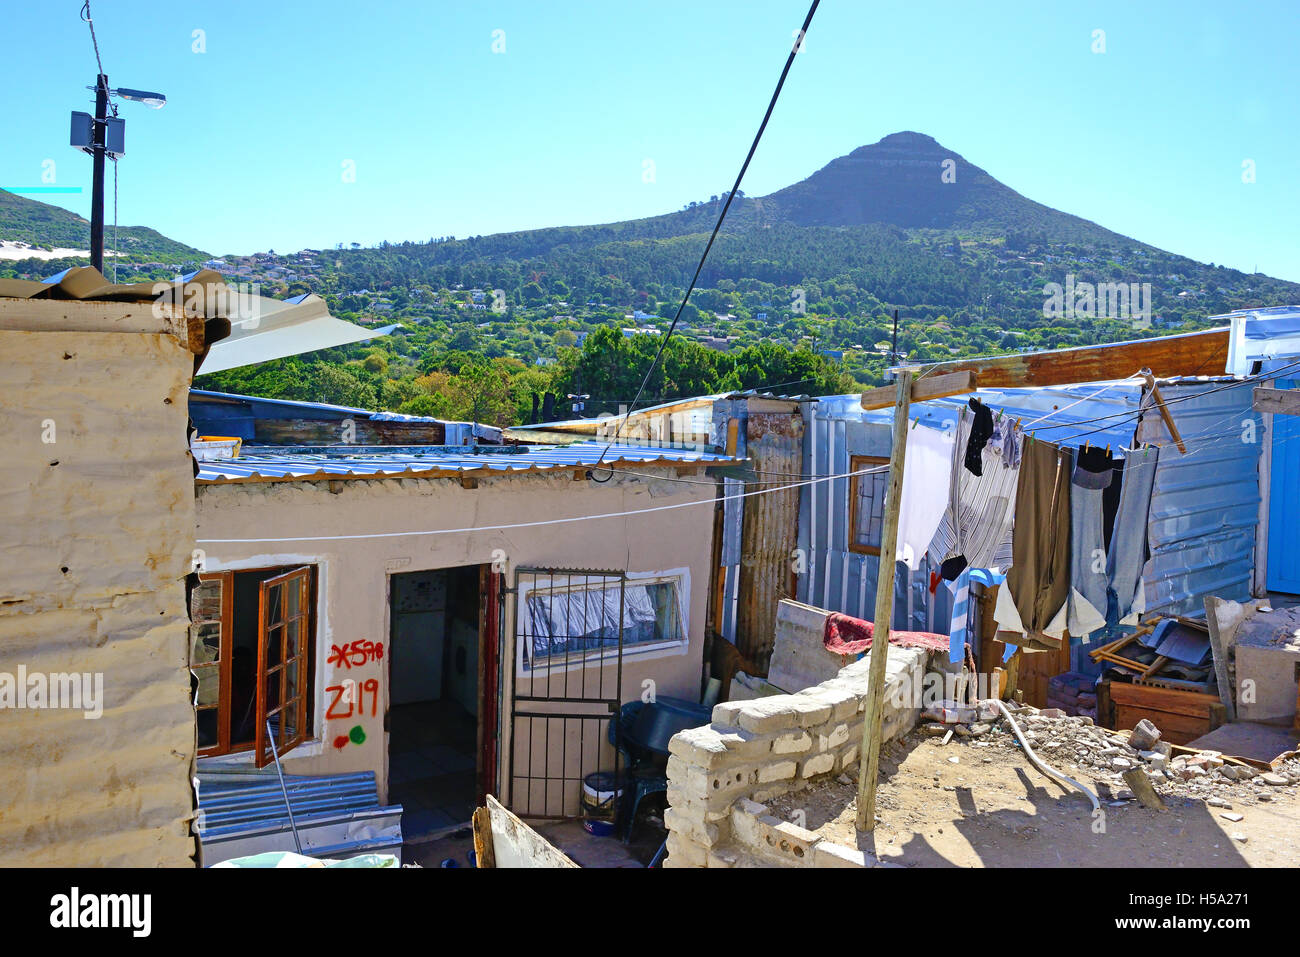 Typical of the 'shack settlements' town ship housing in Imizamo Yethu,commonly known as Mandela Park, Cape Town Stock Photo